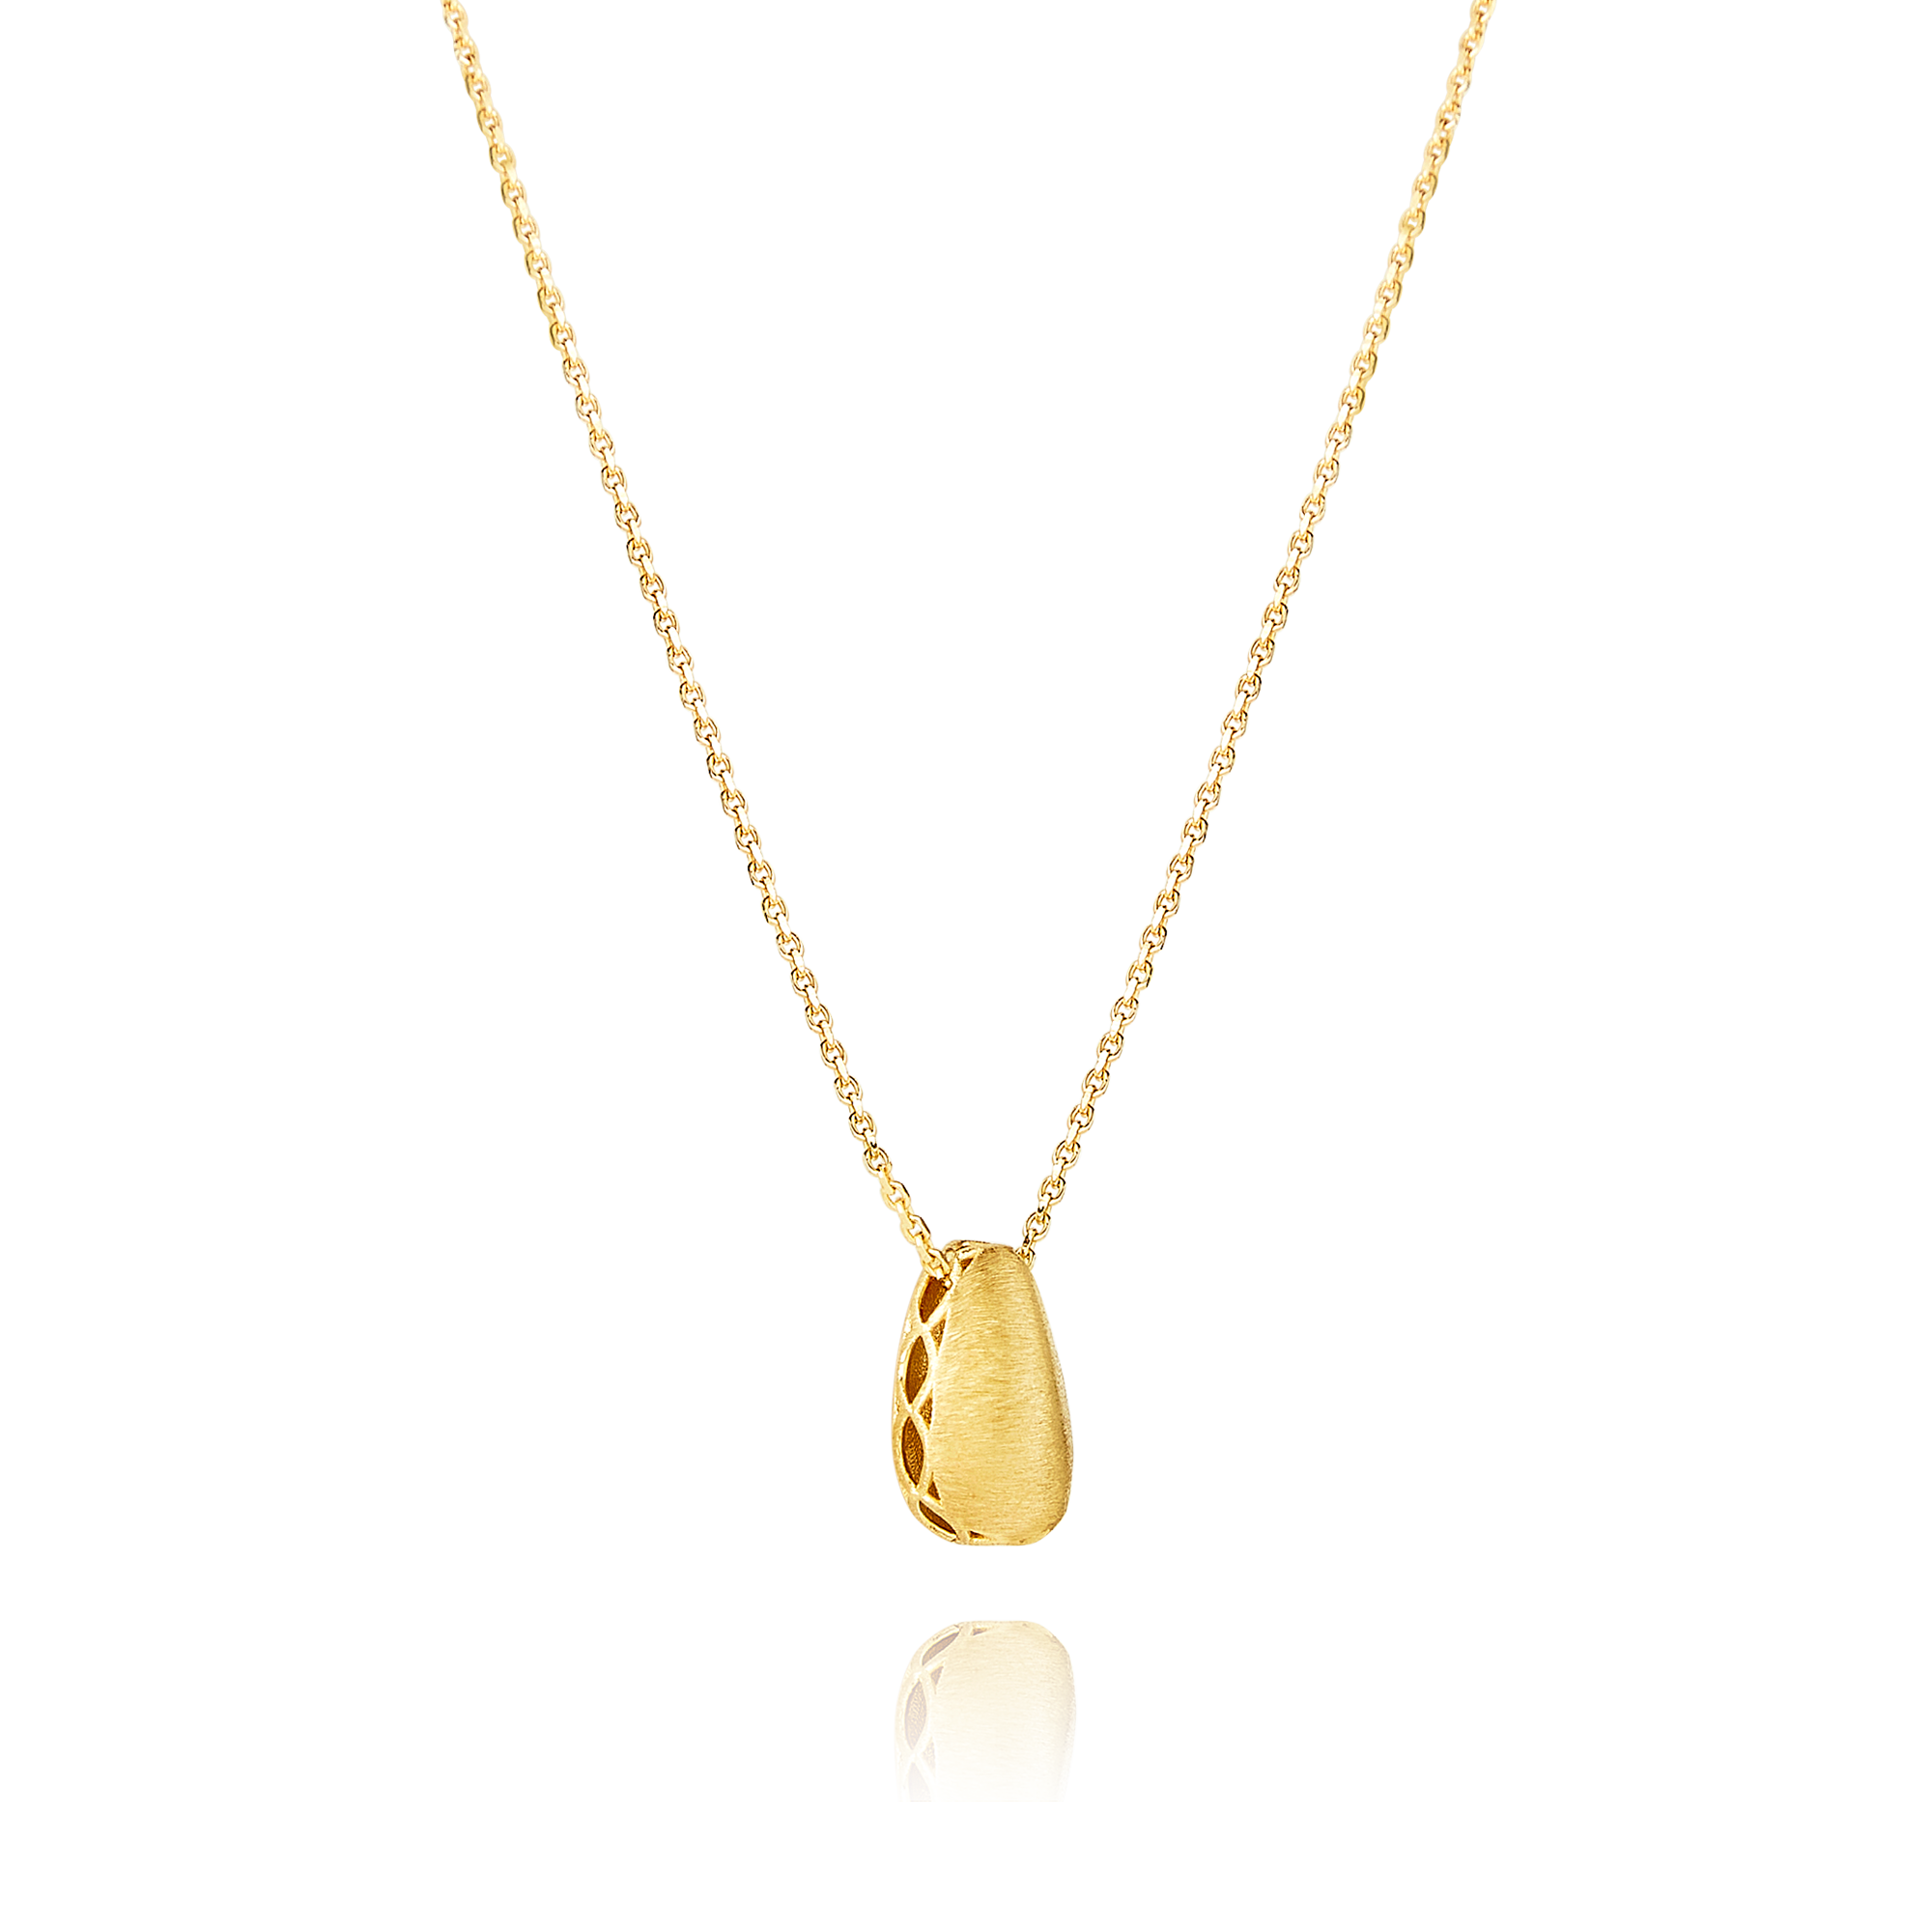 14ct Brushed Gold Nugget Pendant